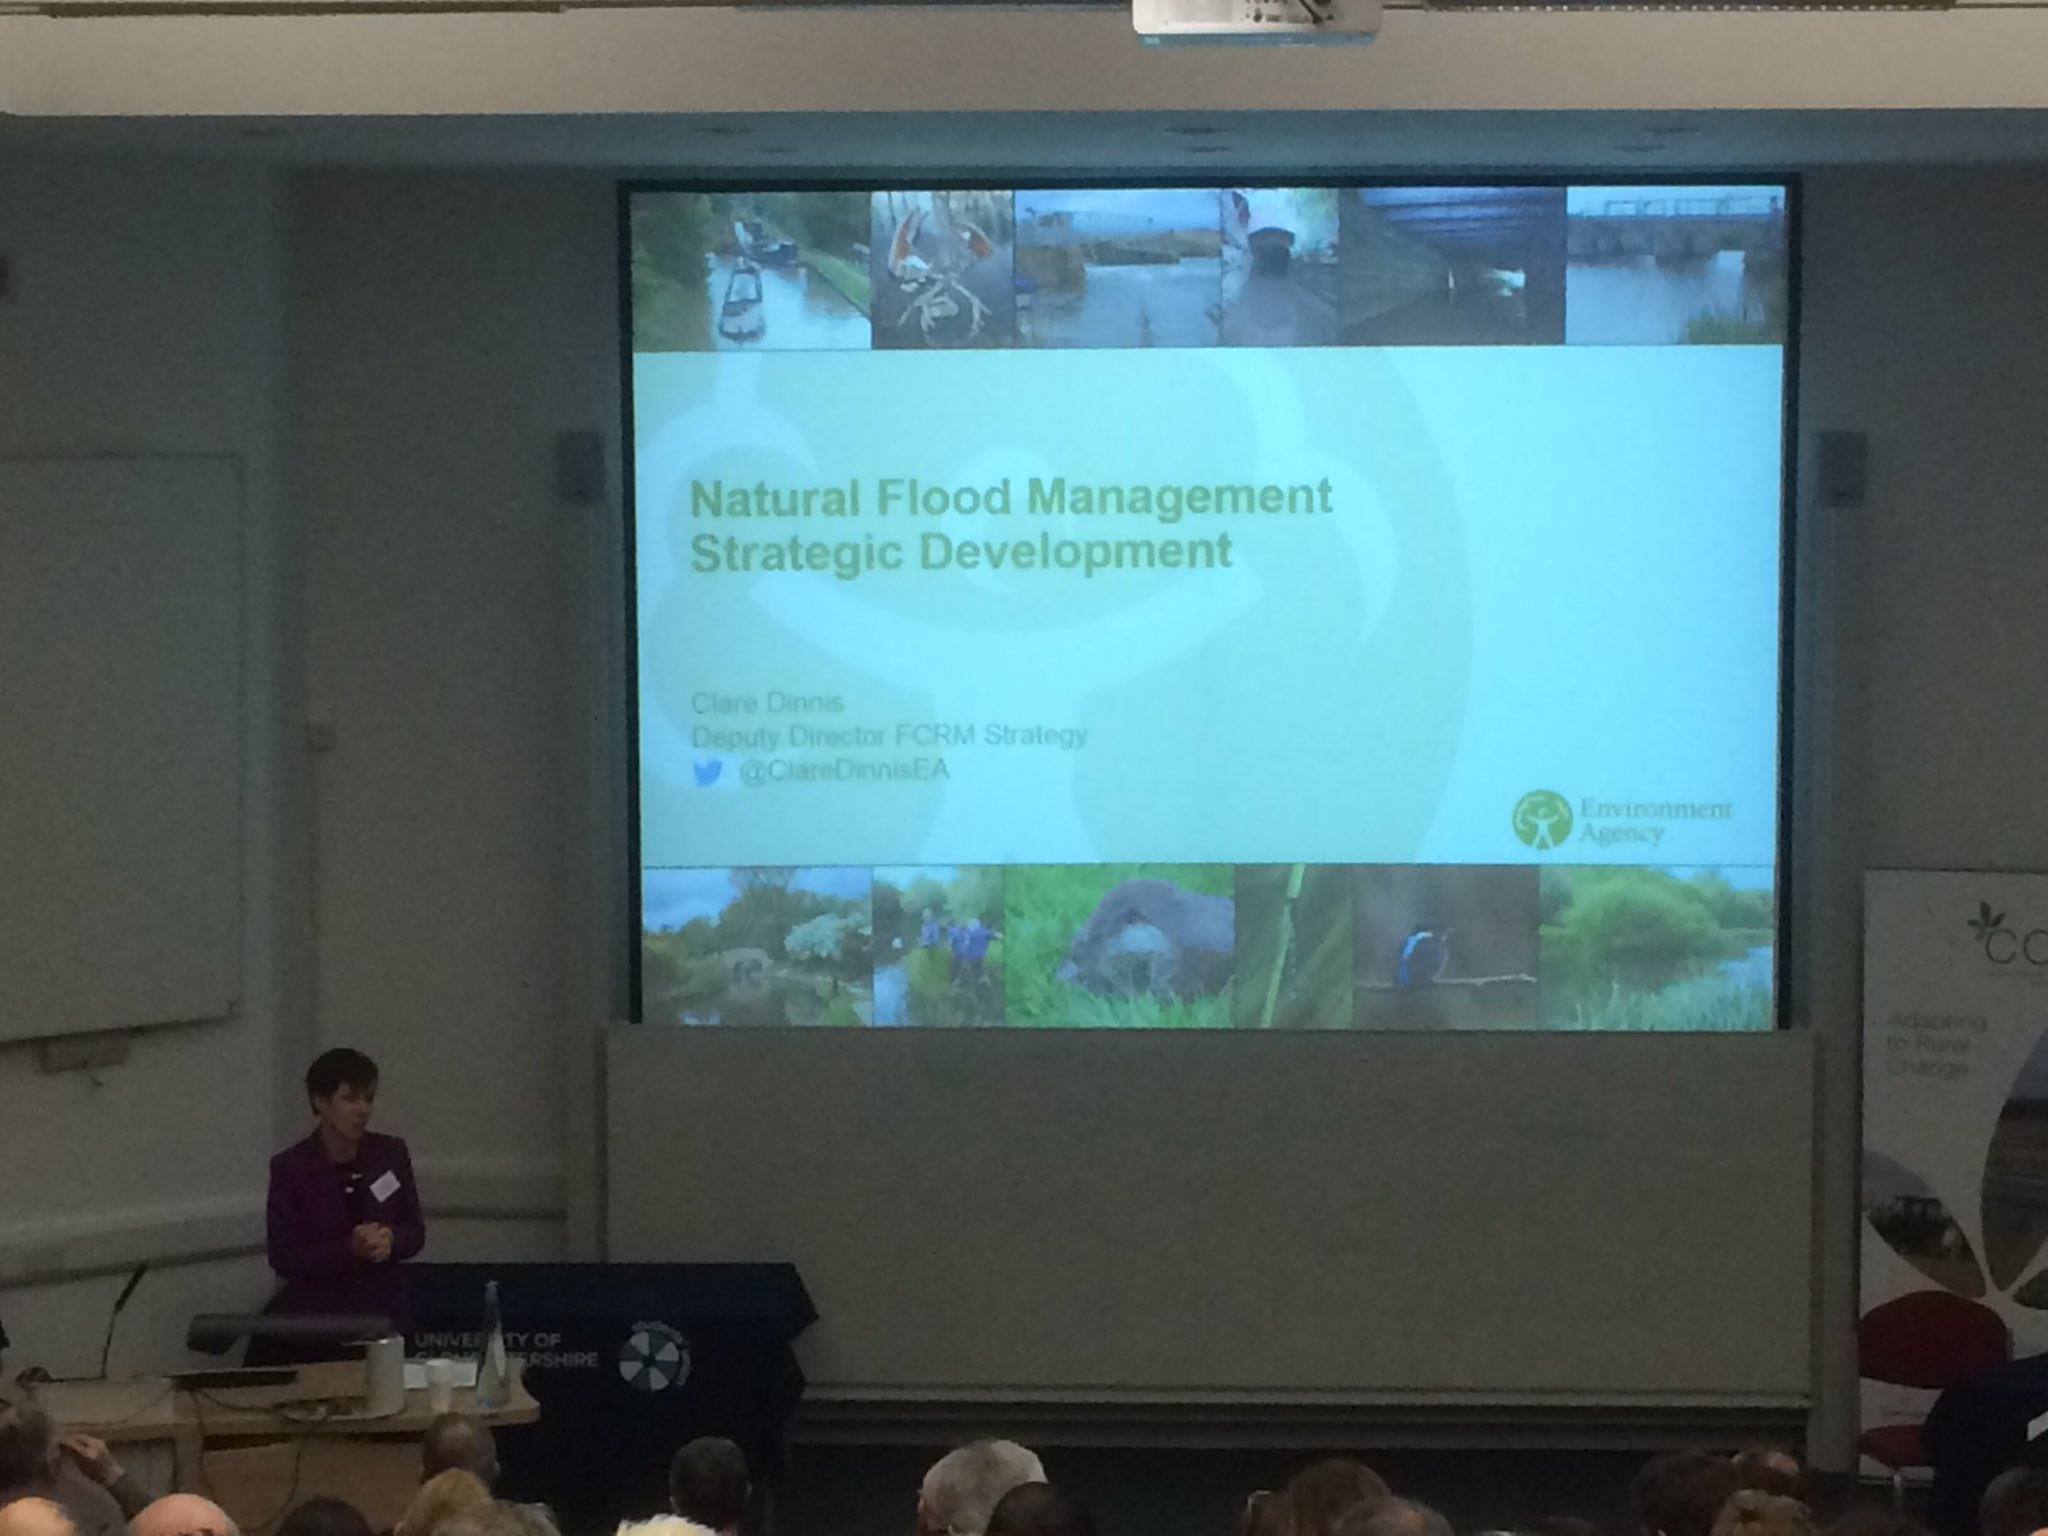 @ClareDinnisEA with the opening #GlosNFM17 presentation on Natural Flood Management https://t.co/p6GUzS4anD